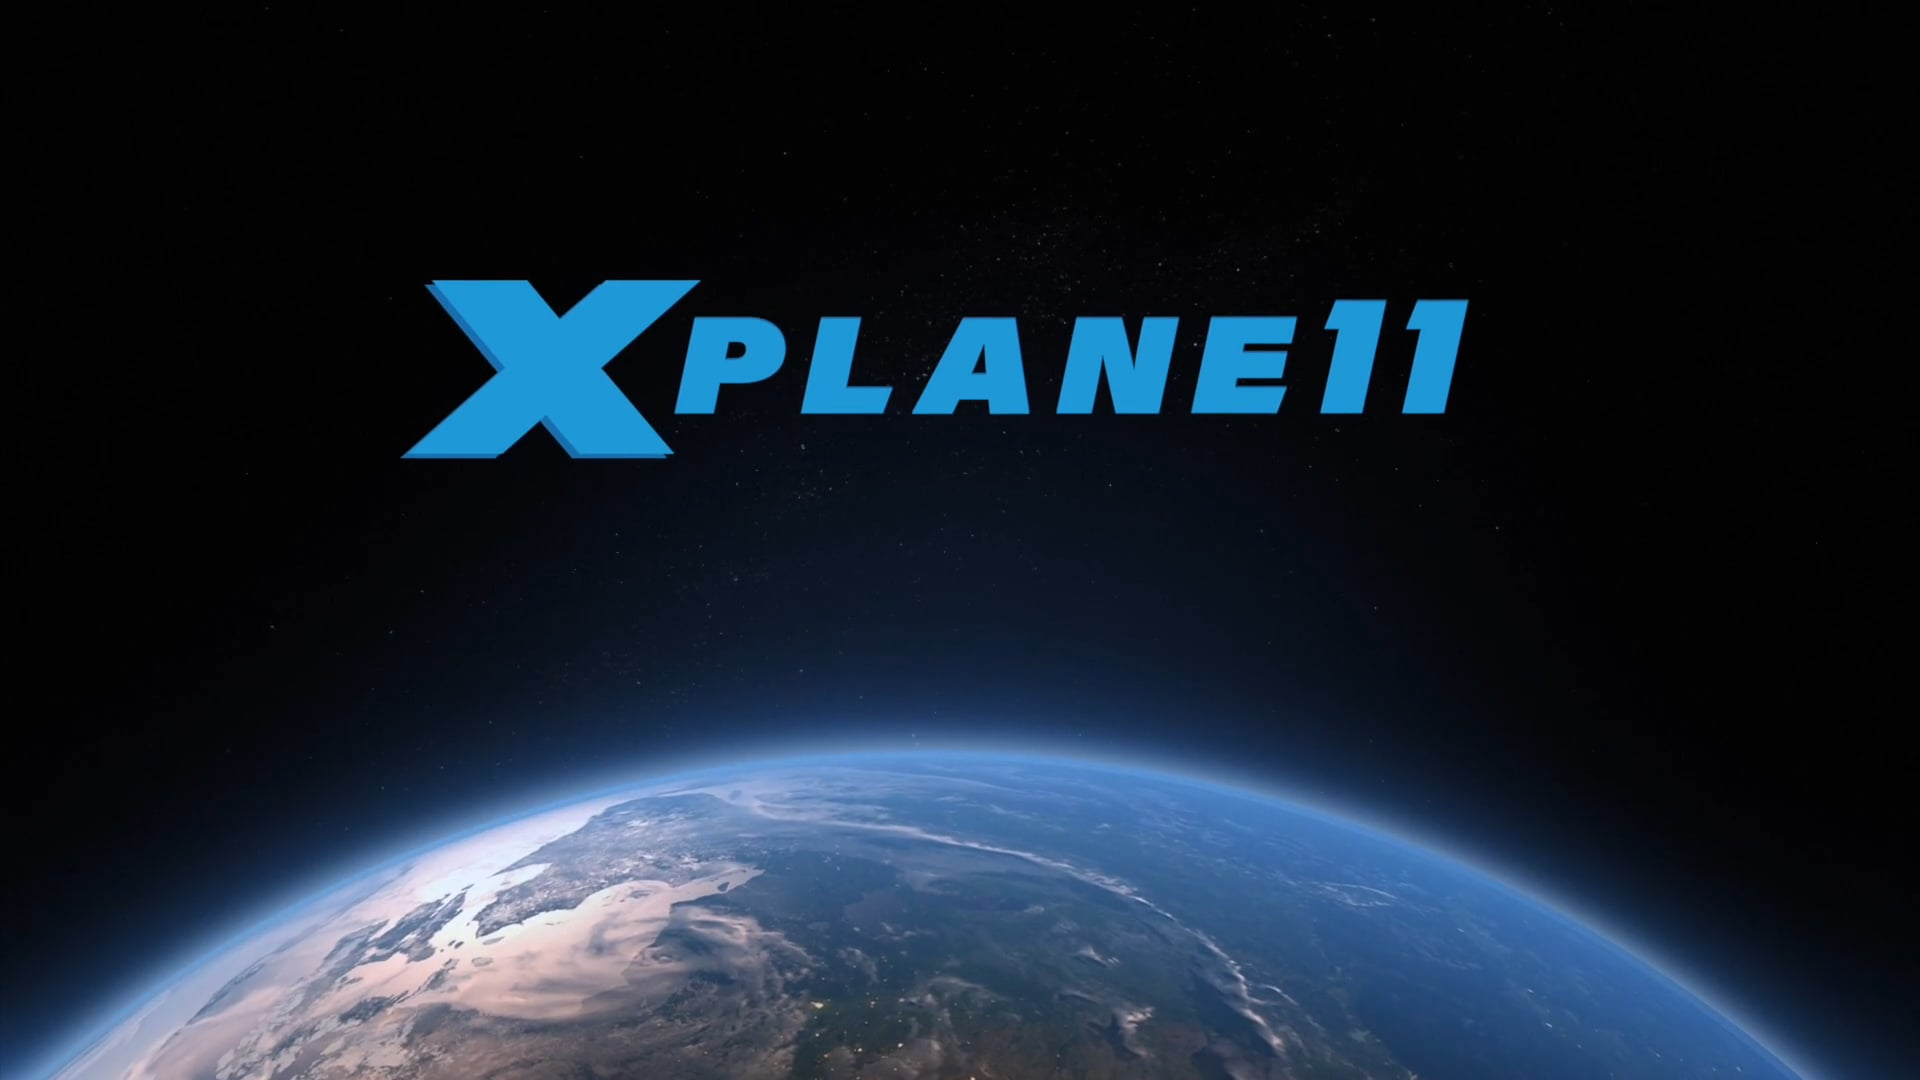 X-Plane 11 Free Download - Crohasit - Download PC Games For Free